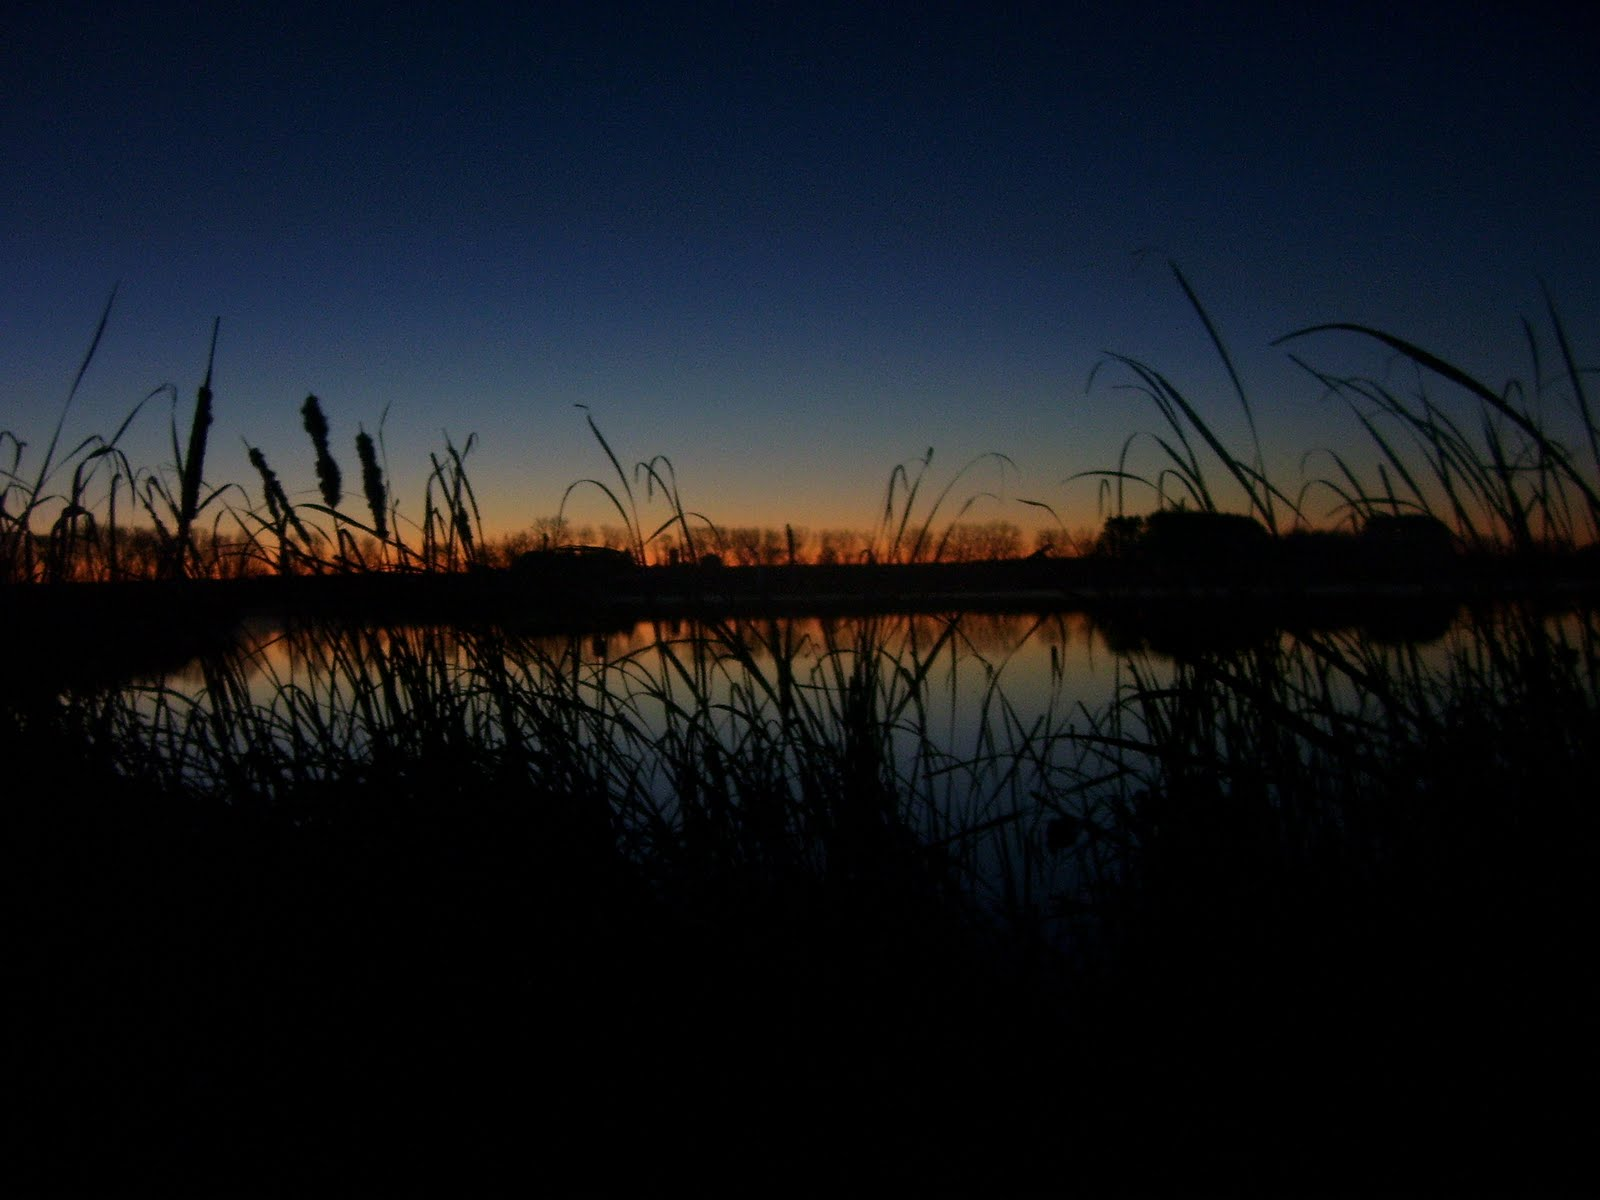 Waterfowl Hunting Wallpaper for Pinterest 1600x1200